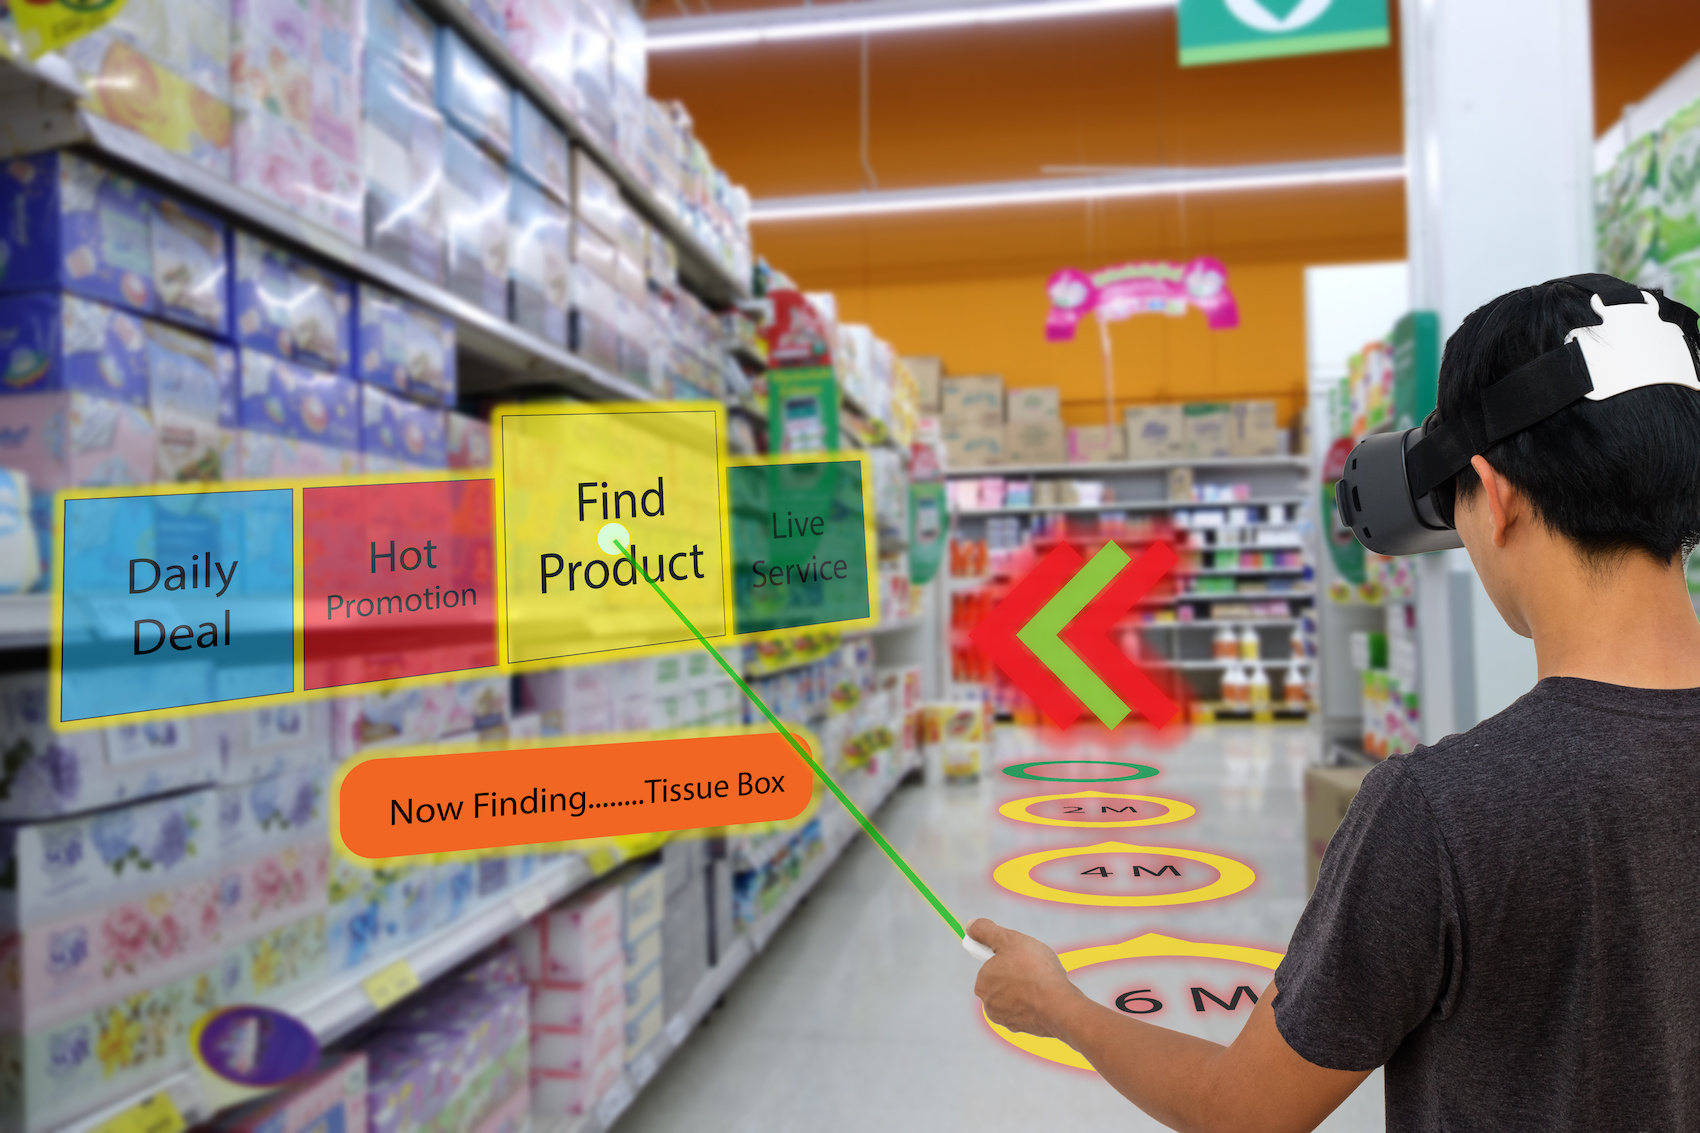 Want to attract Millennial shoppers? Try Augmented Reality. TechNative